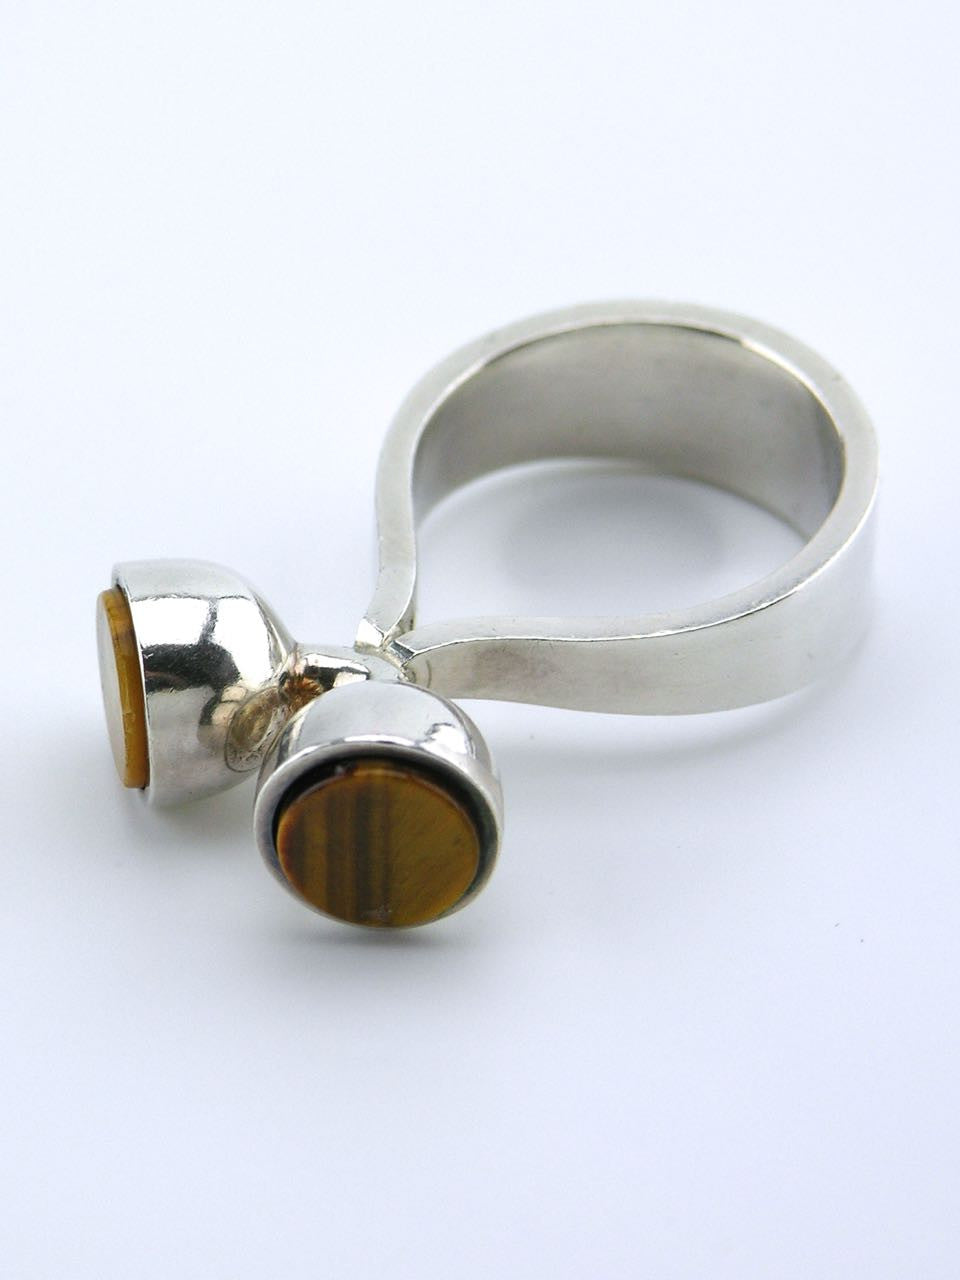 Vintage Arne Johansen Silver and Tiger's Eye Modernist Dot Ring